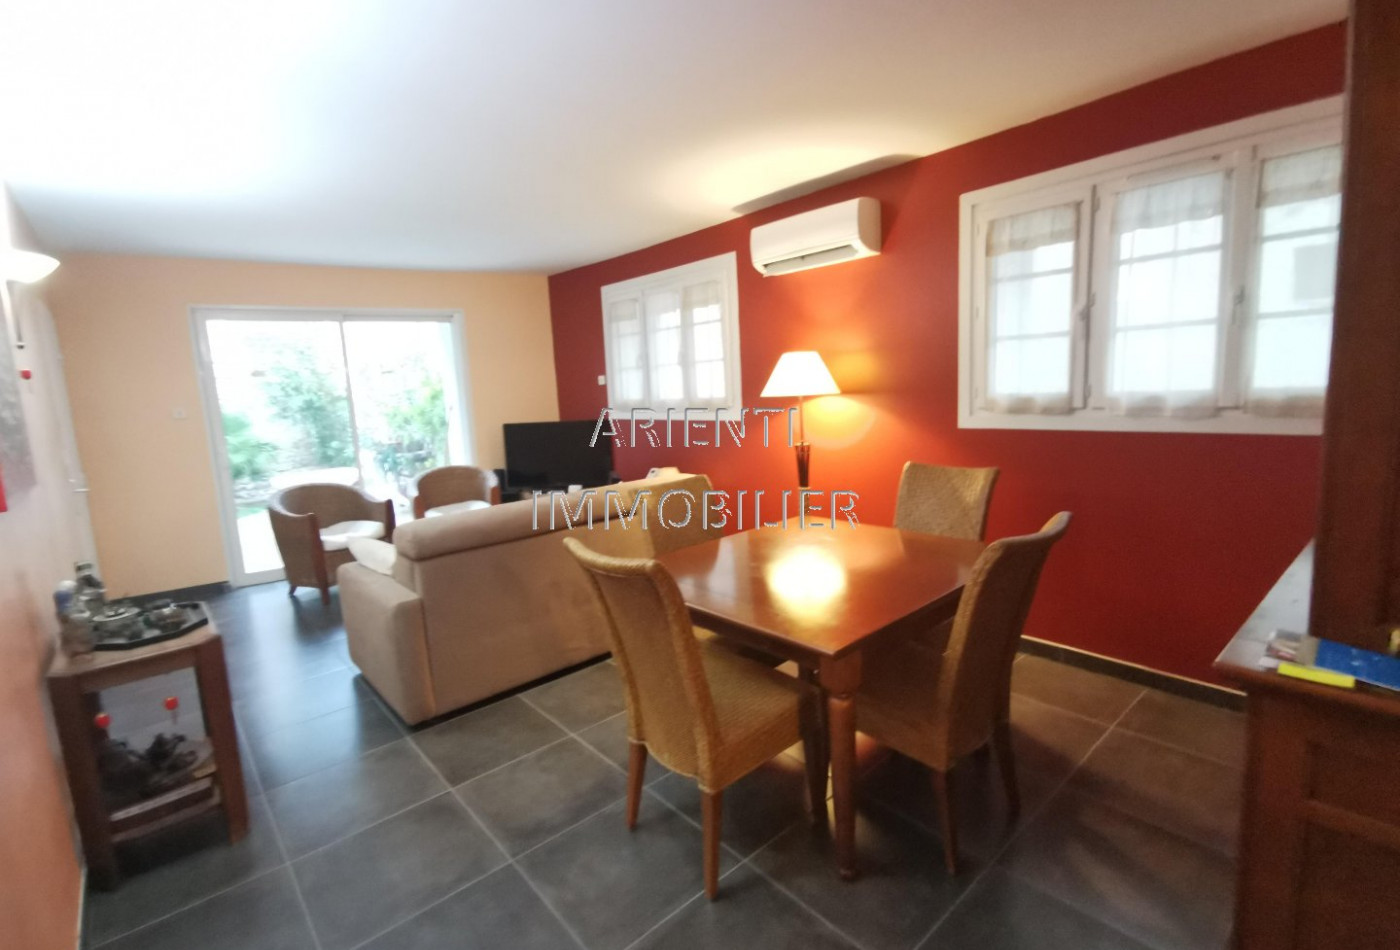 A vendre  Nyons | Réf 260013297 - Office immobilier arienti